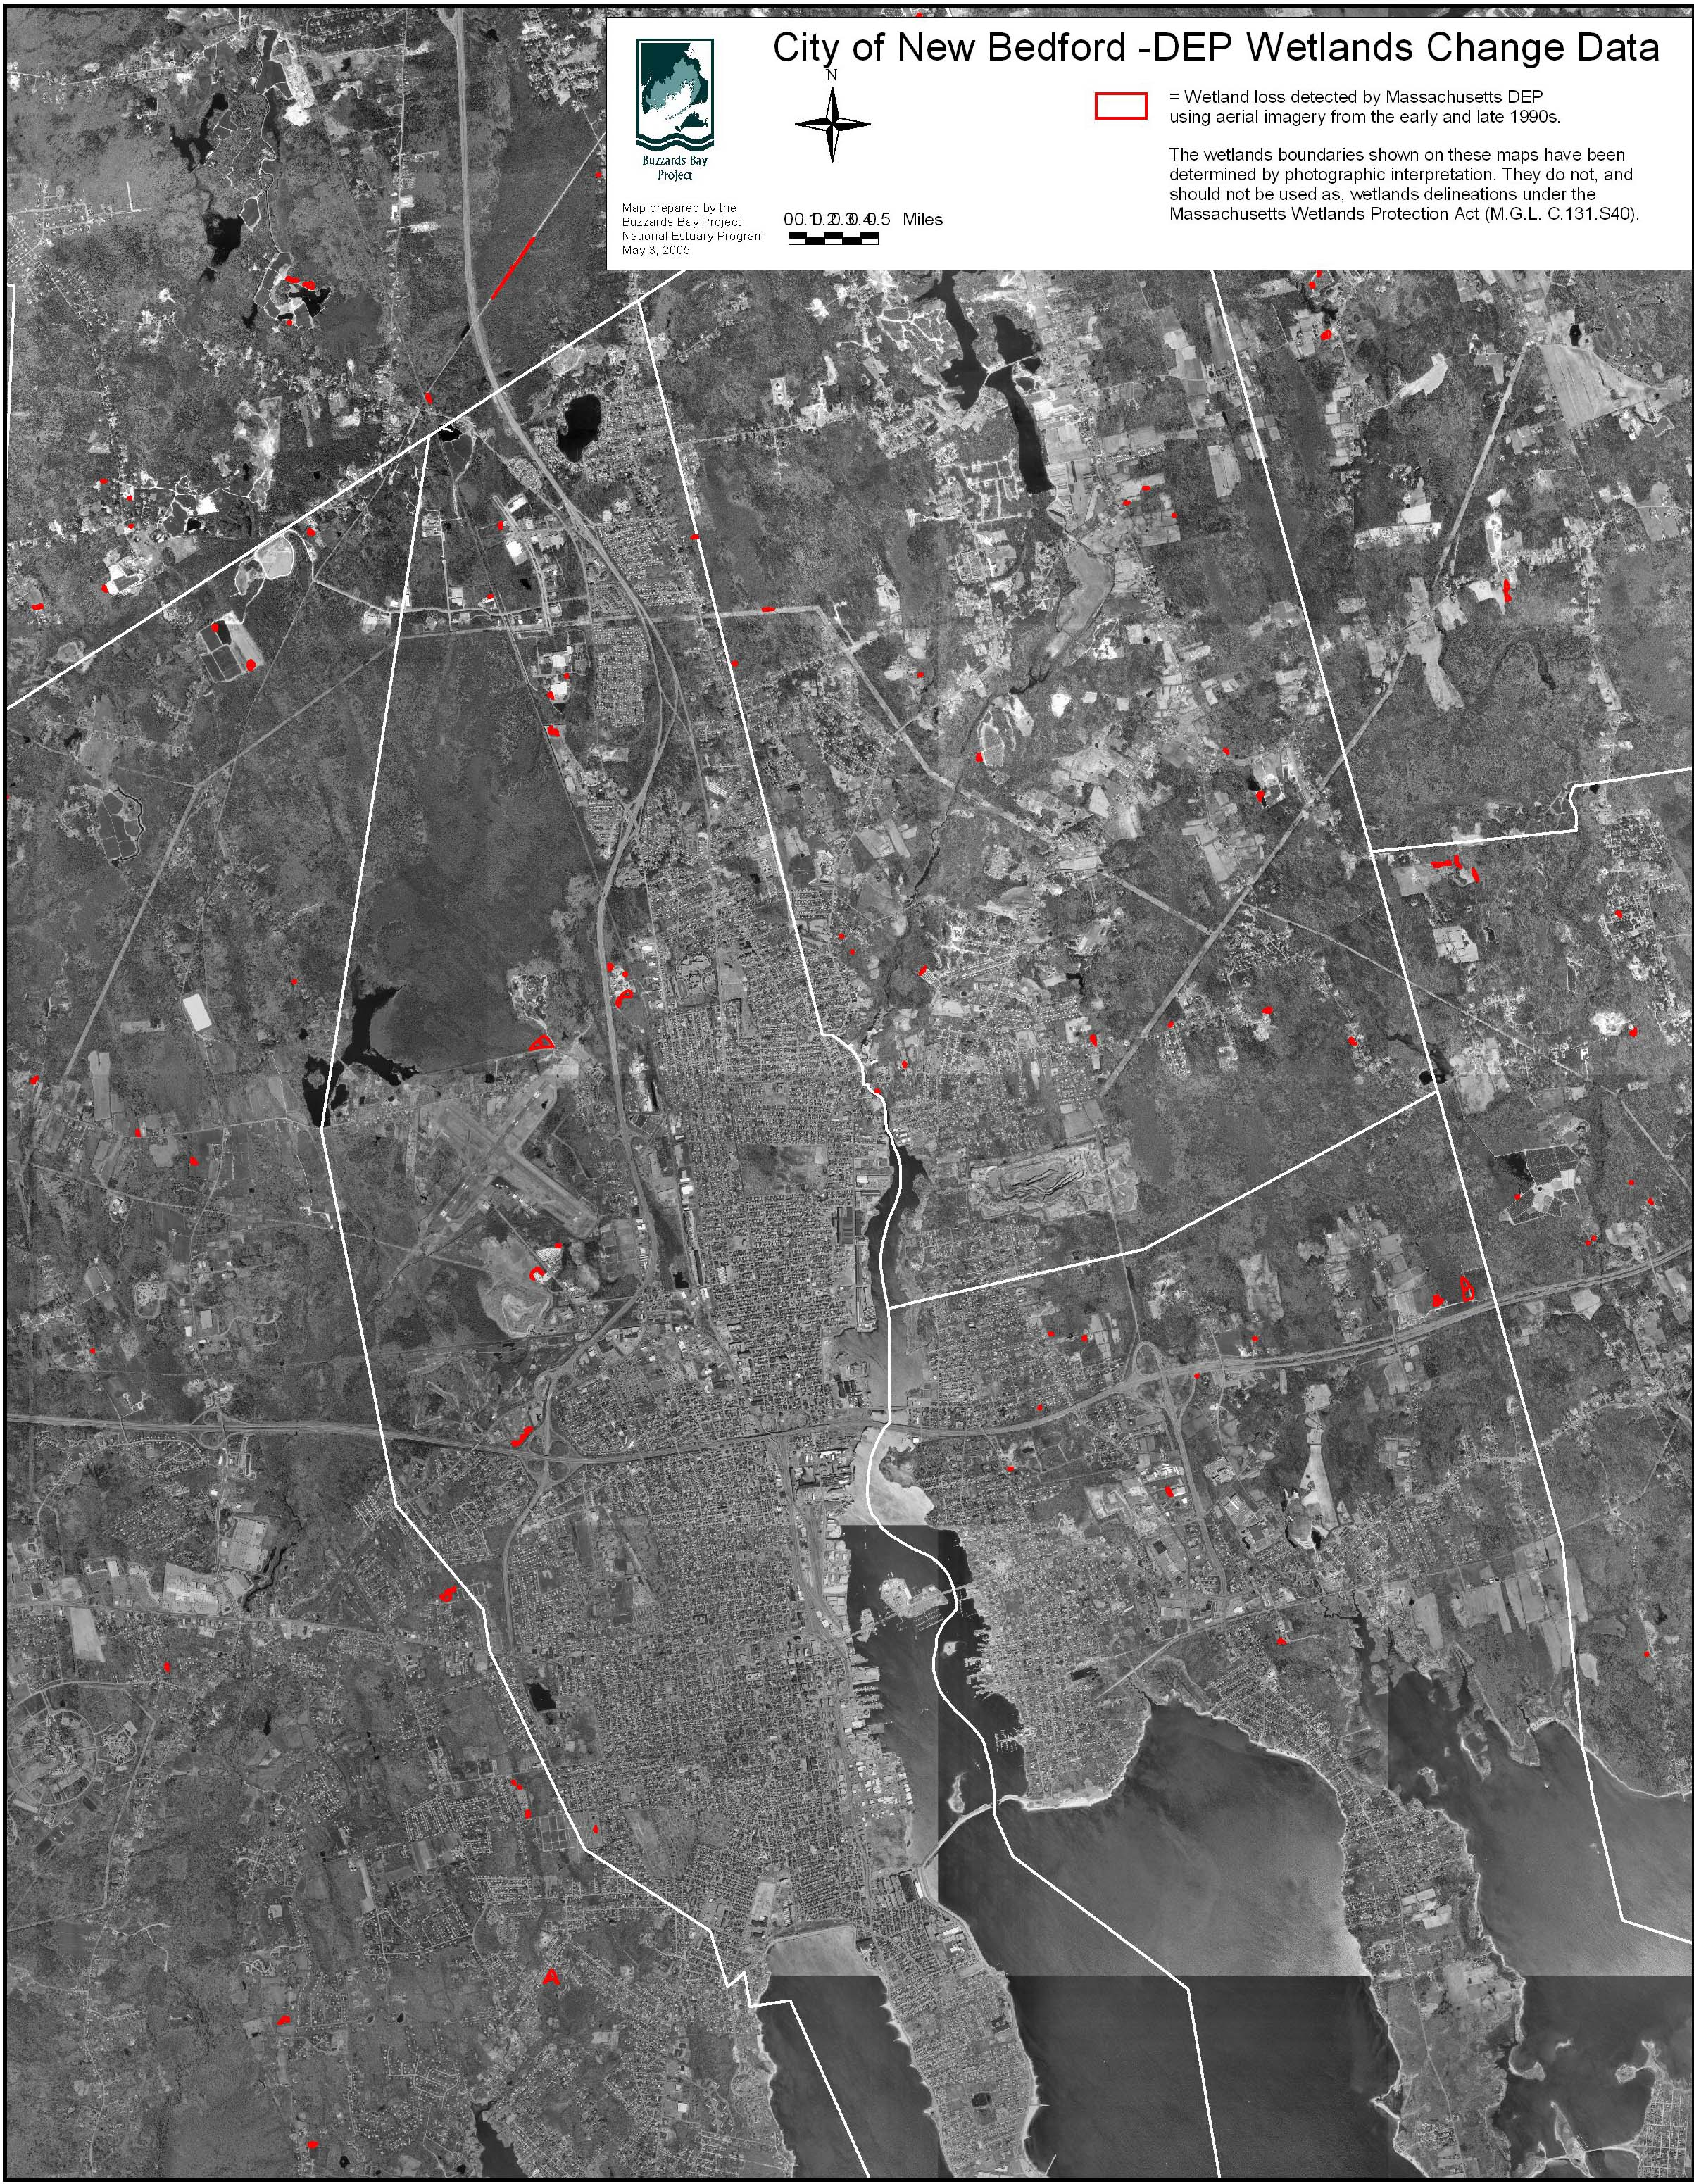 City Of New Bedford Wetland Loss Map